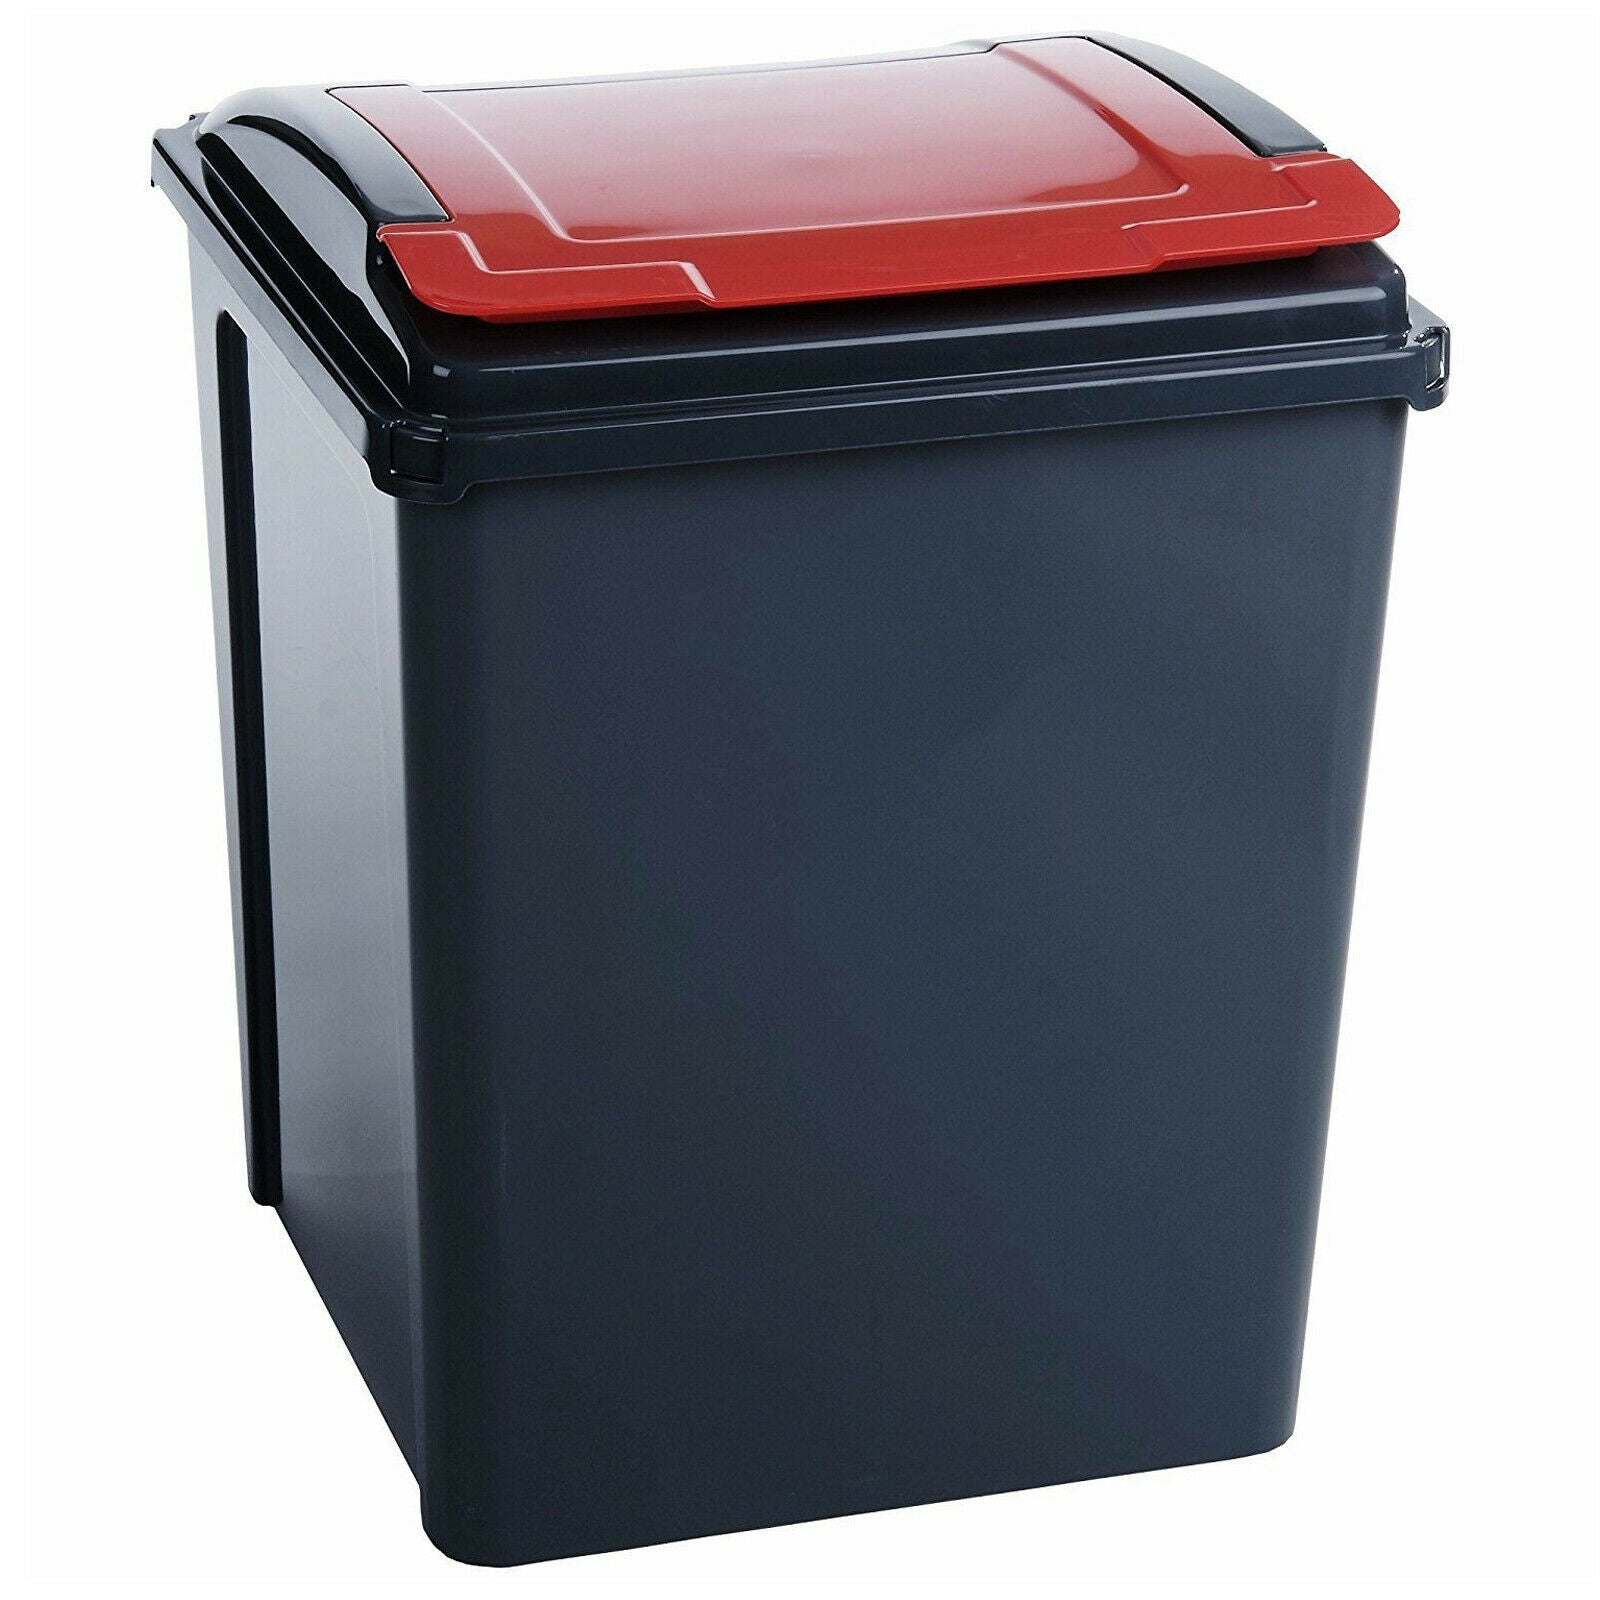 Wham 50 Litre Recycling or Pet Food Storage Bin | Red & Graphite, Pet Food Containers by Dog In A Box